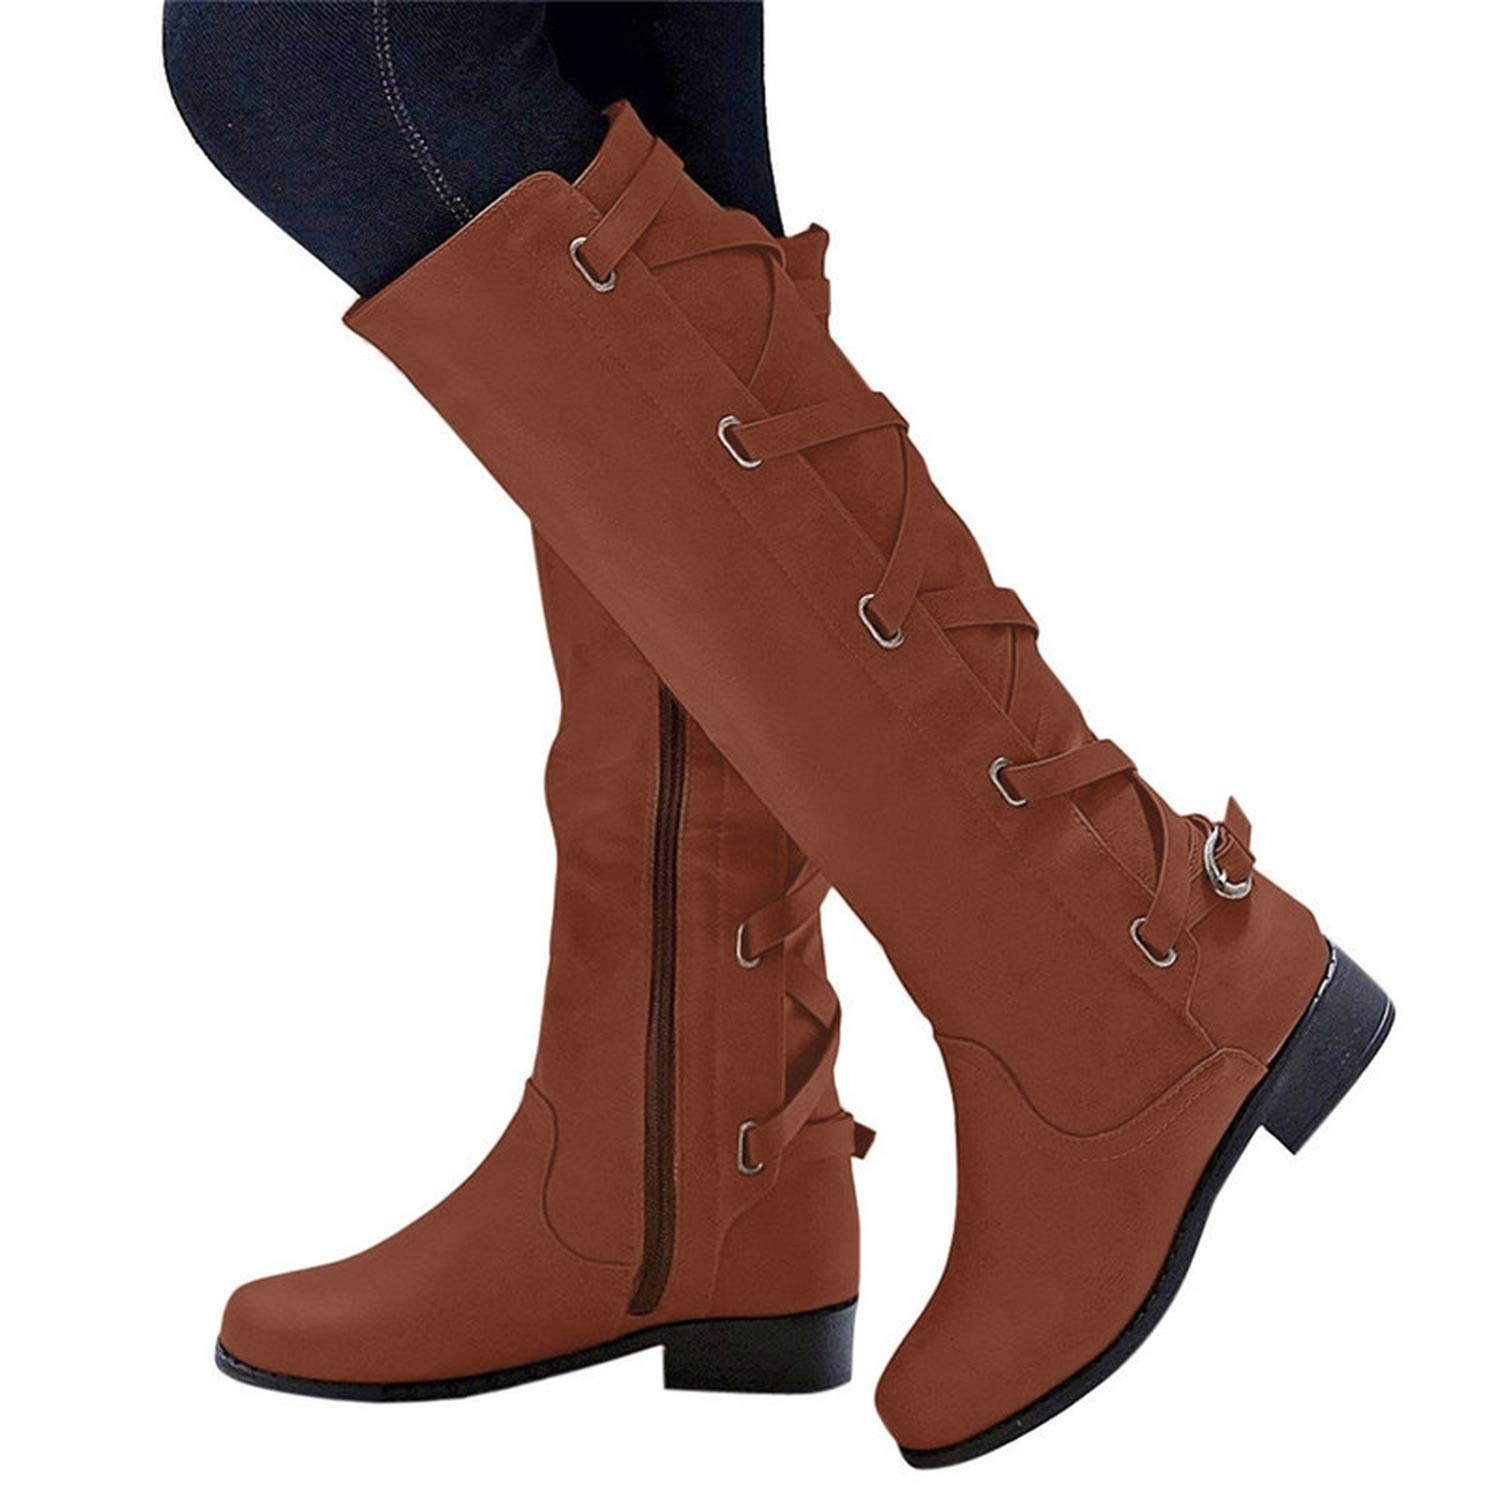 Amazon.com | Botines Shoes Woman Buckle Roman Riding Knee High Cowboy Boots Women Casual Boots Botas, Khaki, 8, C | Knee-High